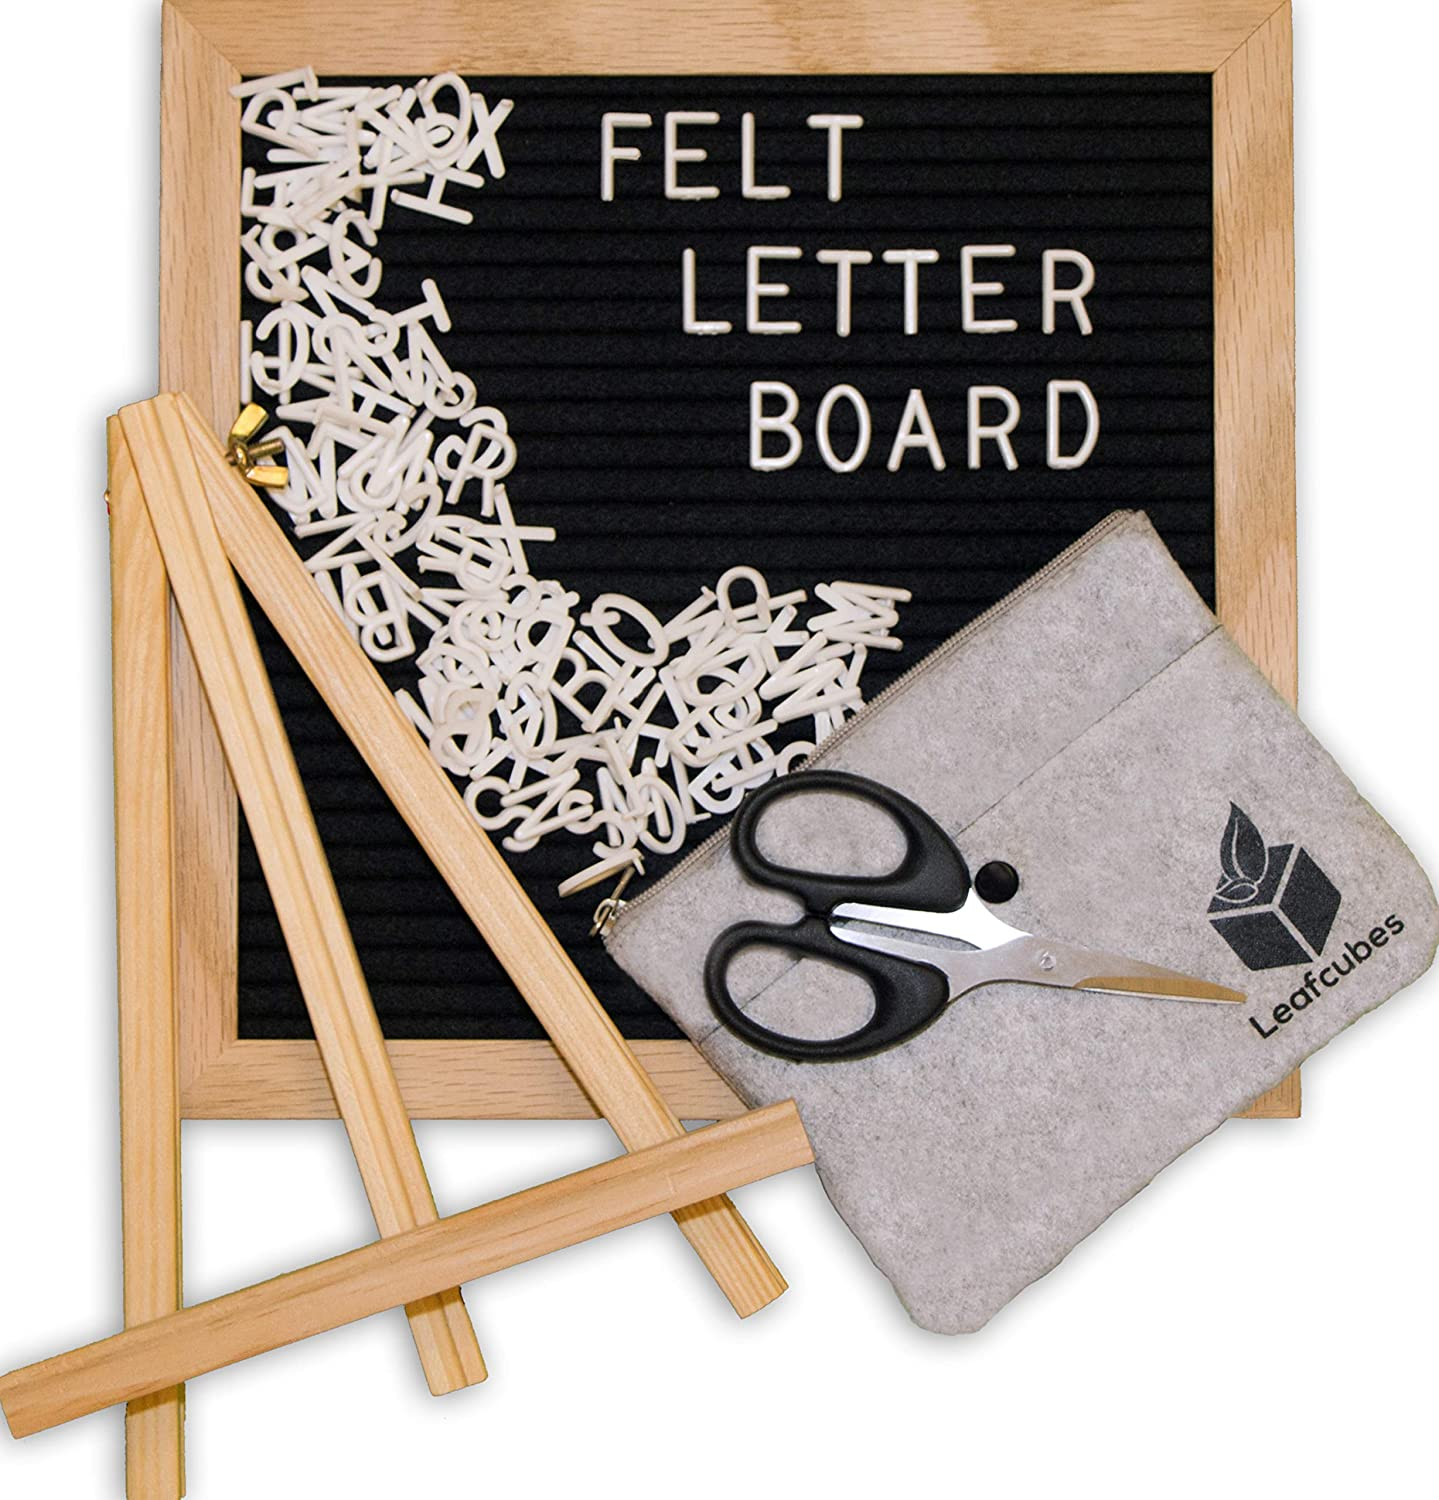 Felt Letter Board 10x10 inches - Letter Board with Letters - Oak Wood Frame Black Felt Letter Board, 364 White Changeable Sign Letters, Emojis Symbols Numbers - Letterboard Hanger, Message Board Stand Leafcubes